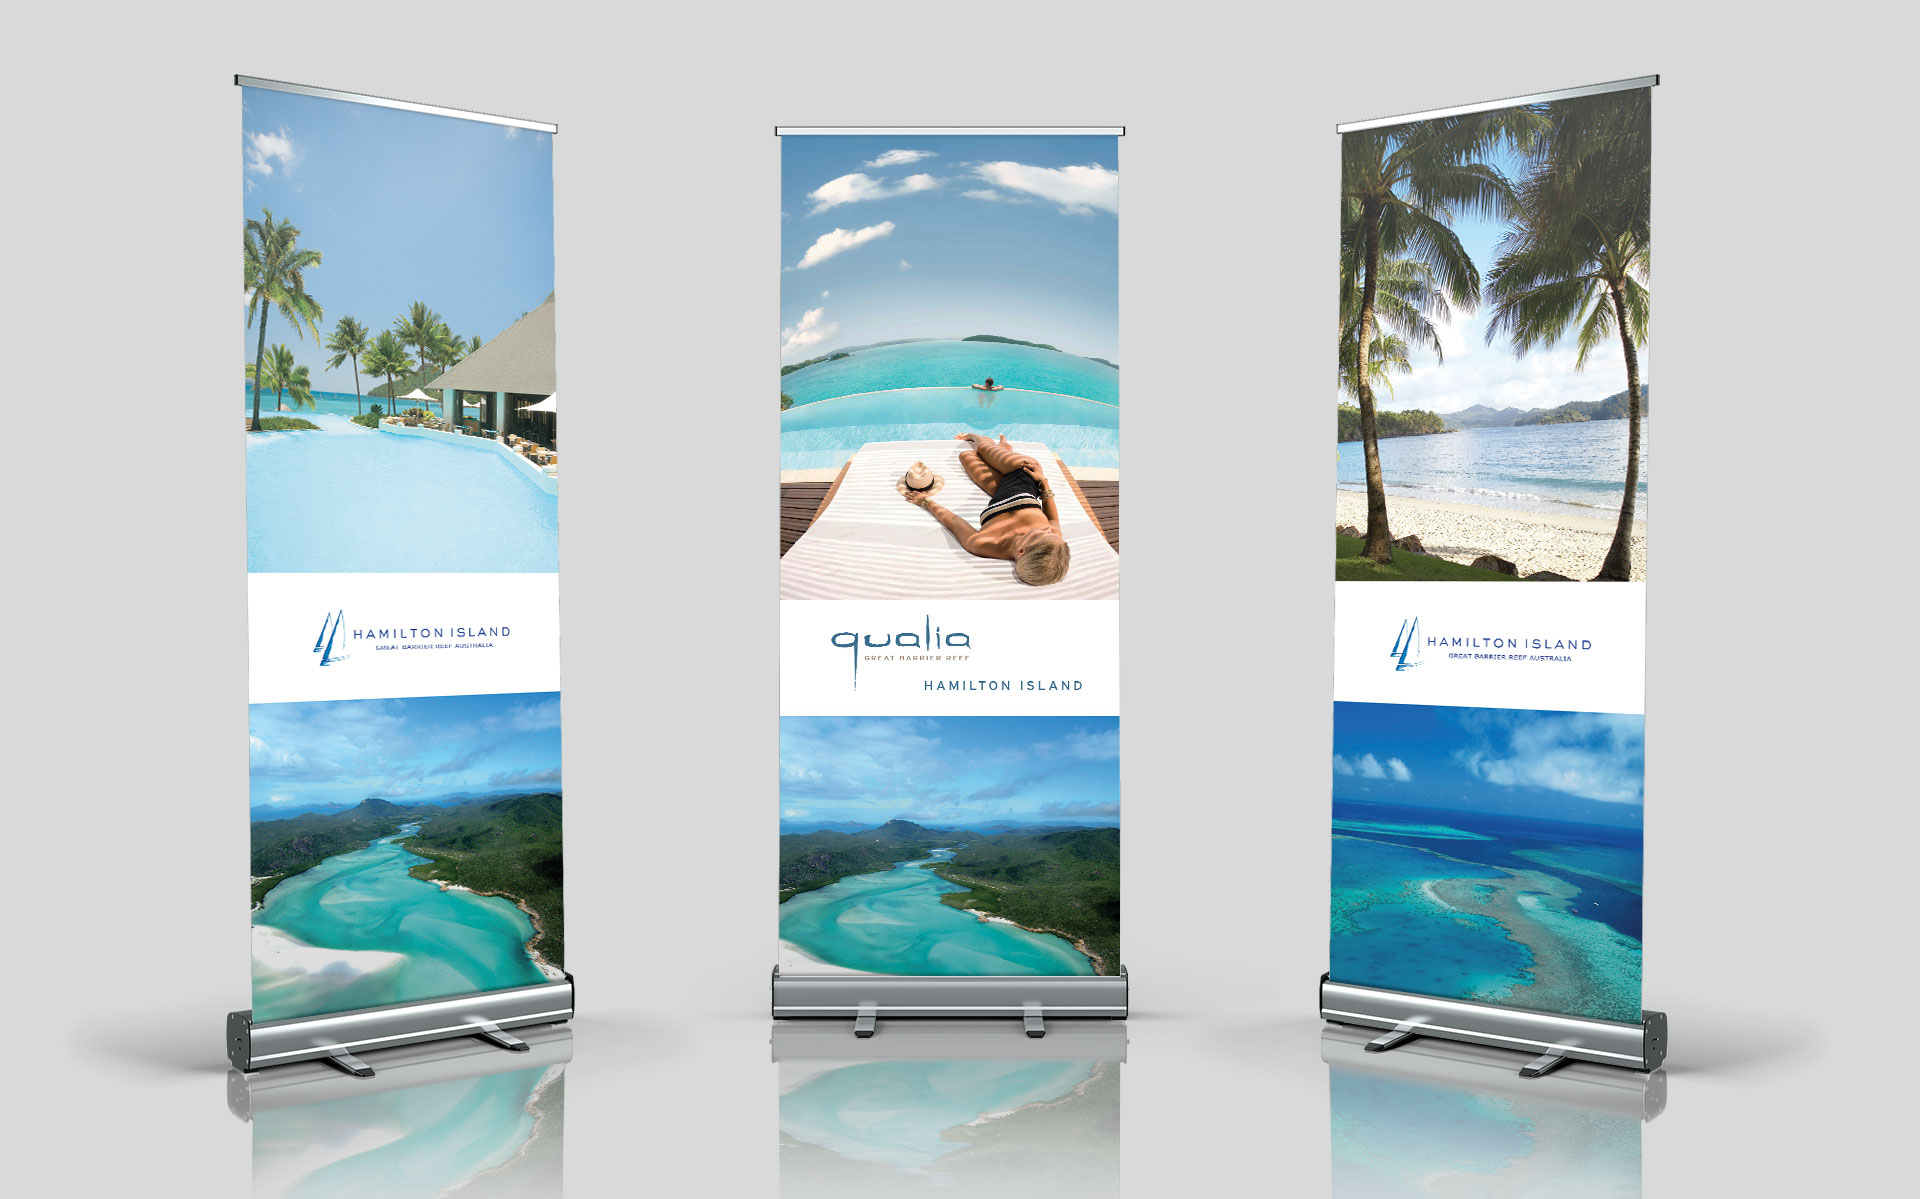 Hamilton Island marketing, advertising, publications & events designed by Amy Howard